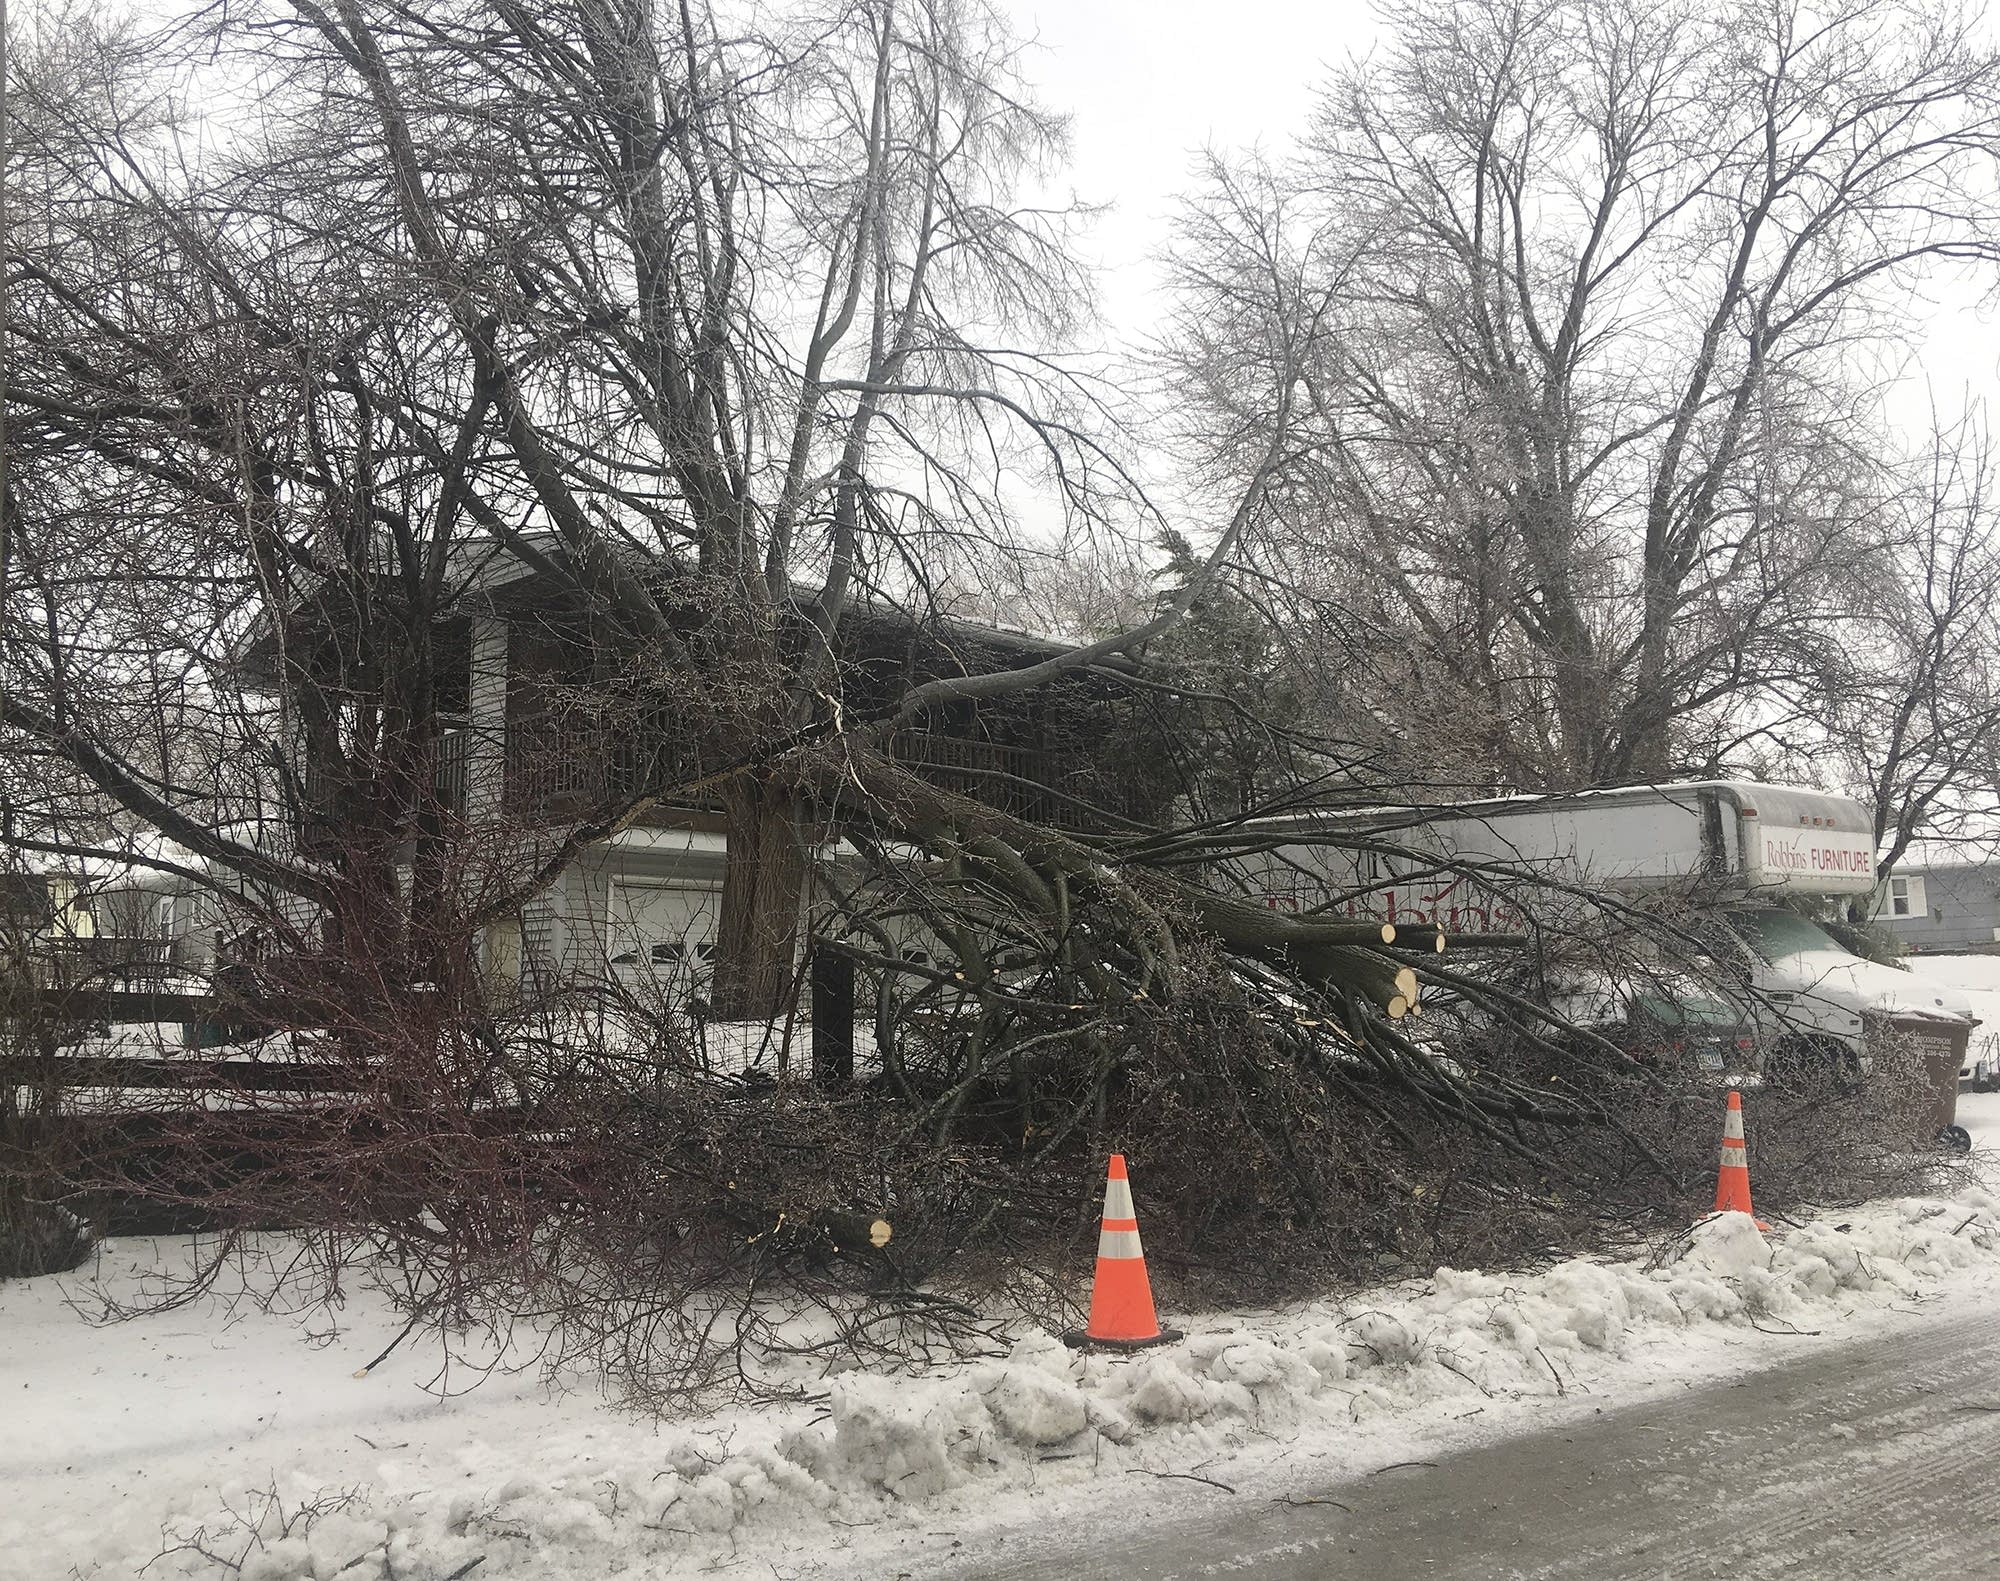 A tree was down in front of a house on Marie Avenue in Albert Lea, Minn.